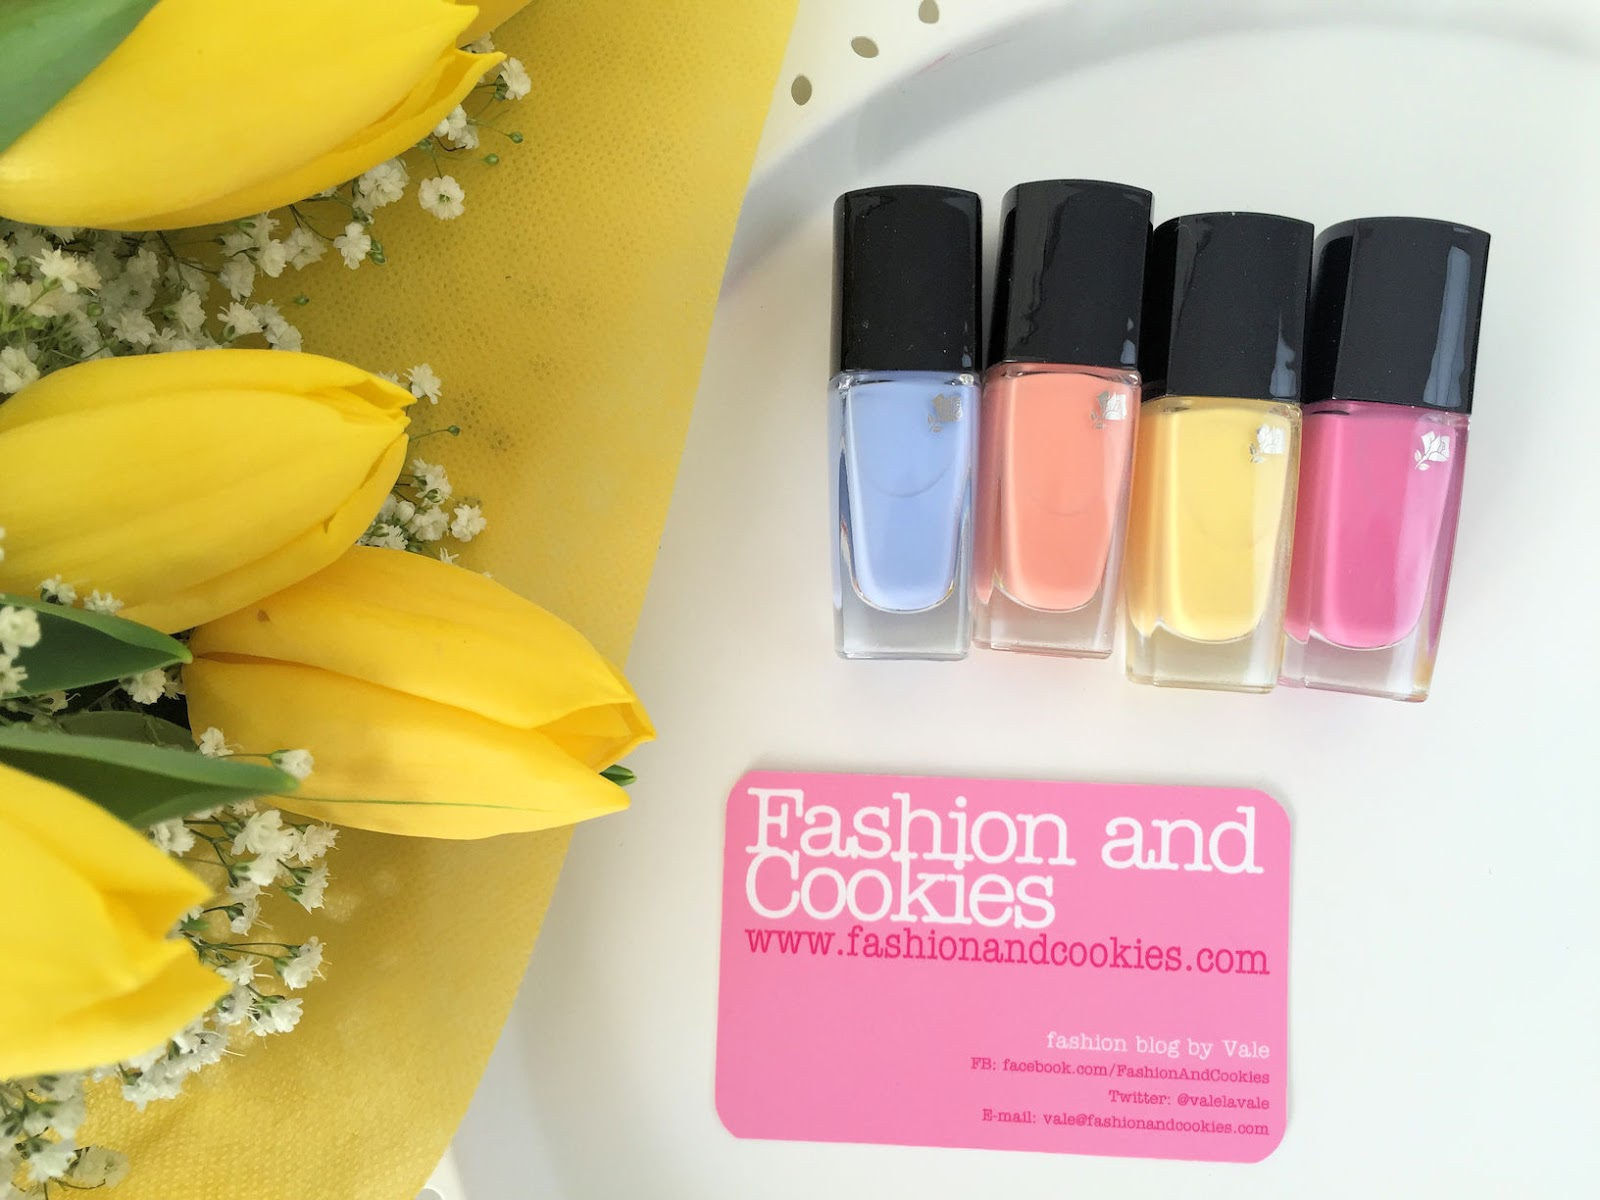 Lancôme makeup collection for Spring 2016 My Parisian Pastels vernis in love candy shades on Fashion and Cookies beauty blog, beauty blogger